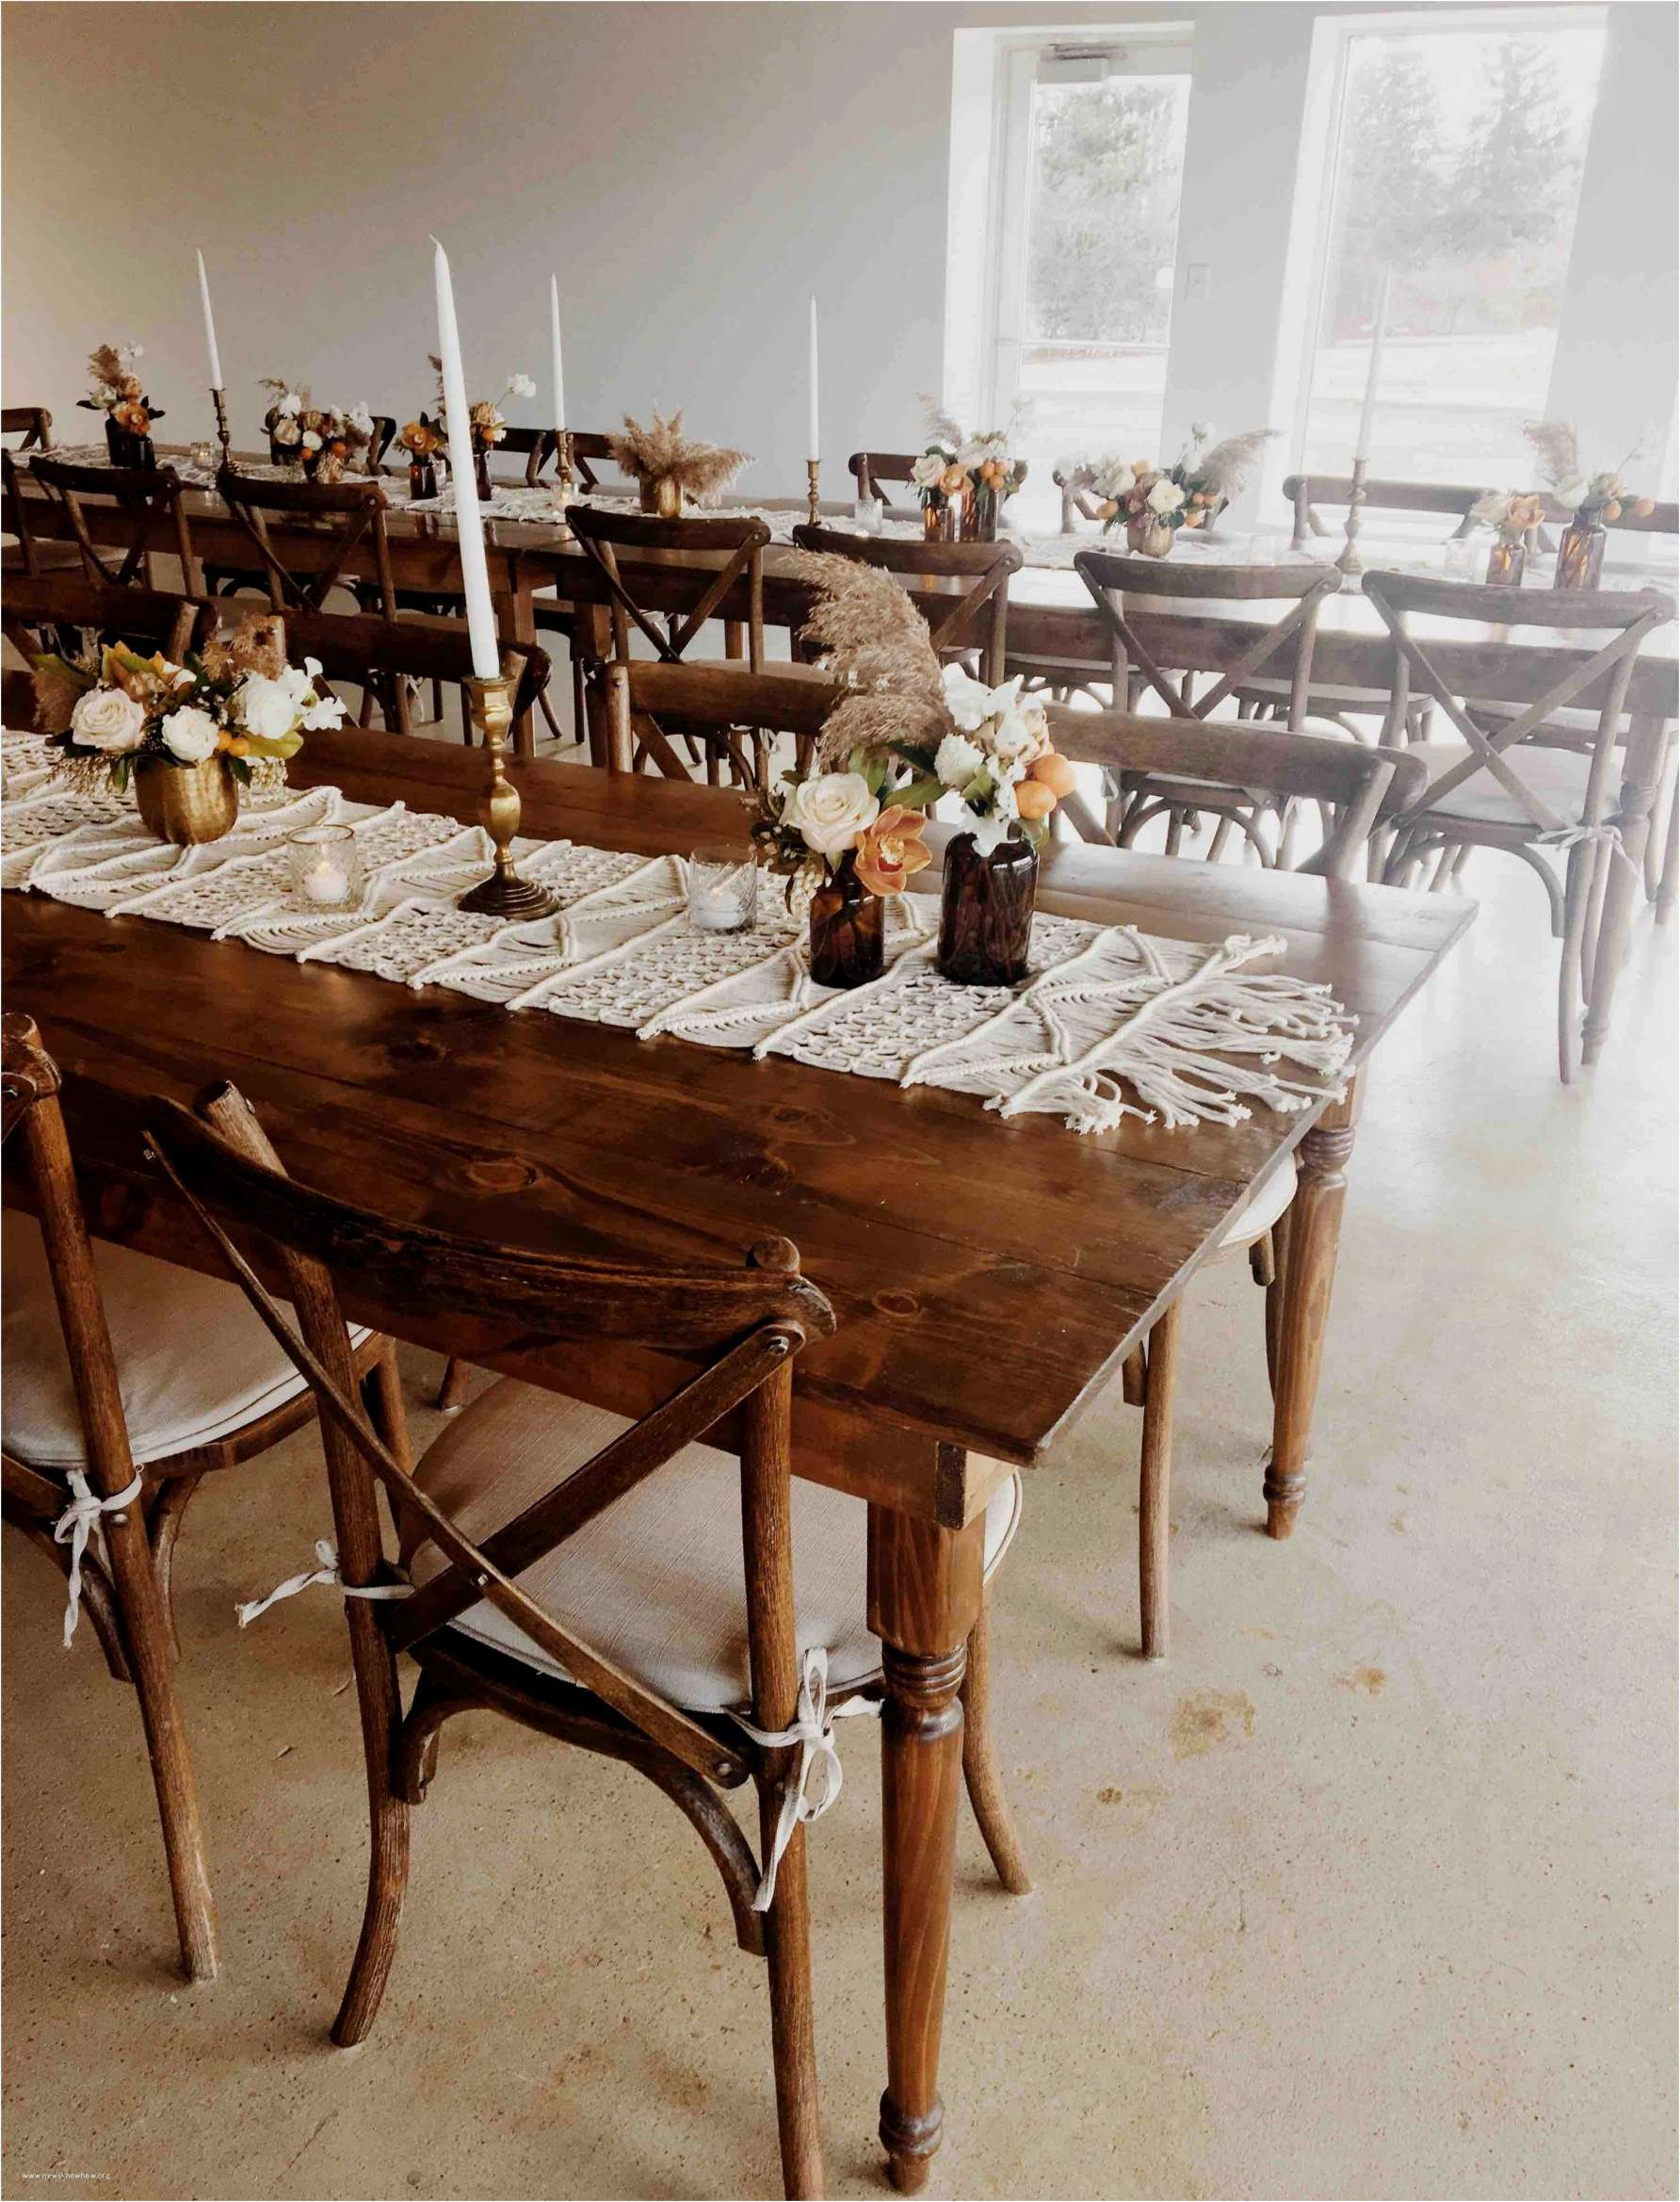 dining room accent pieces also small wall decor ideas meilleur scpi ashley furniture magnolia home beautiful unique living table design with corey rustic brown tables inspire